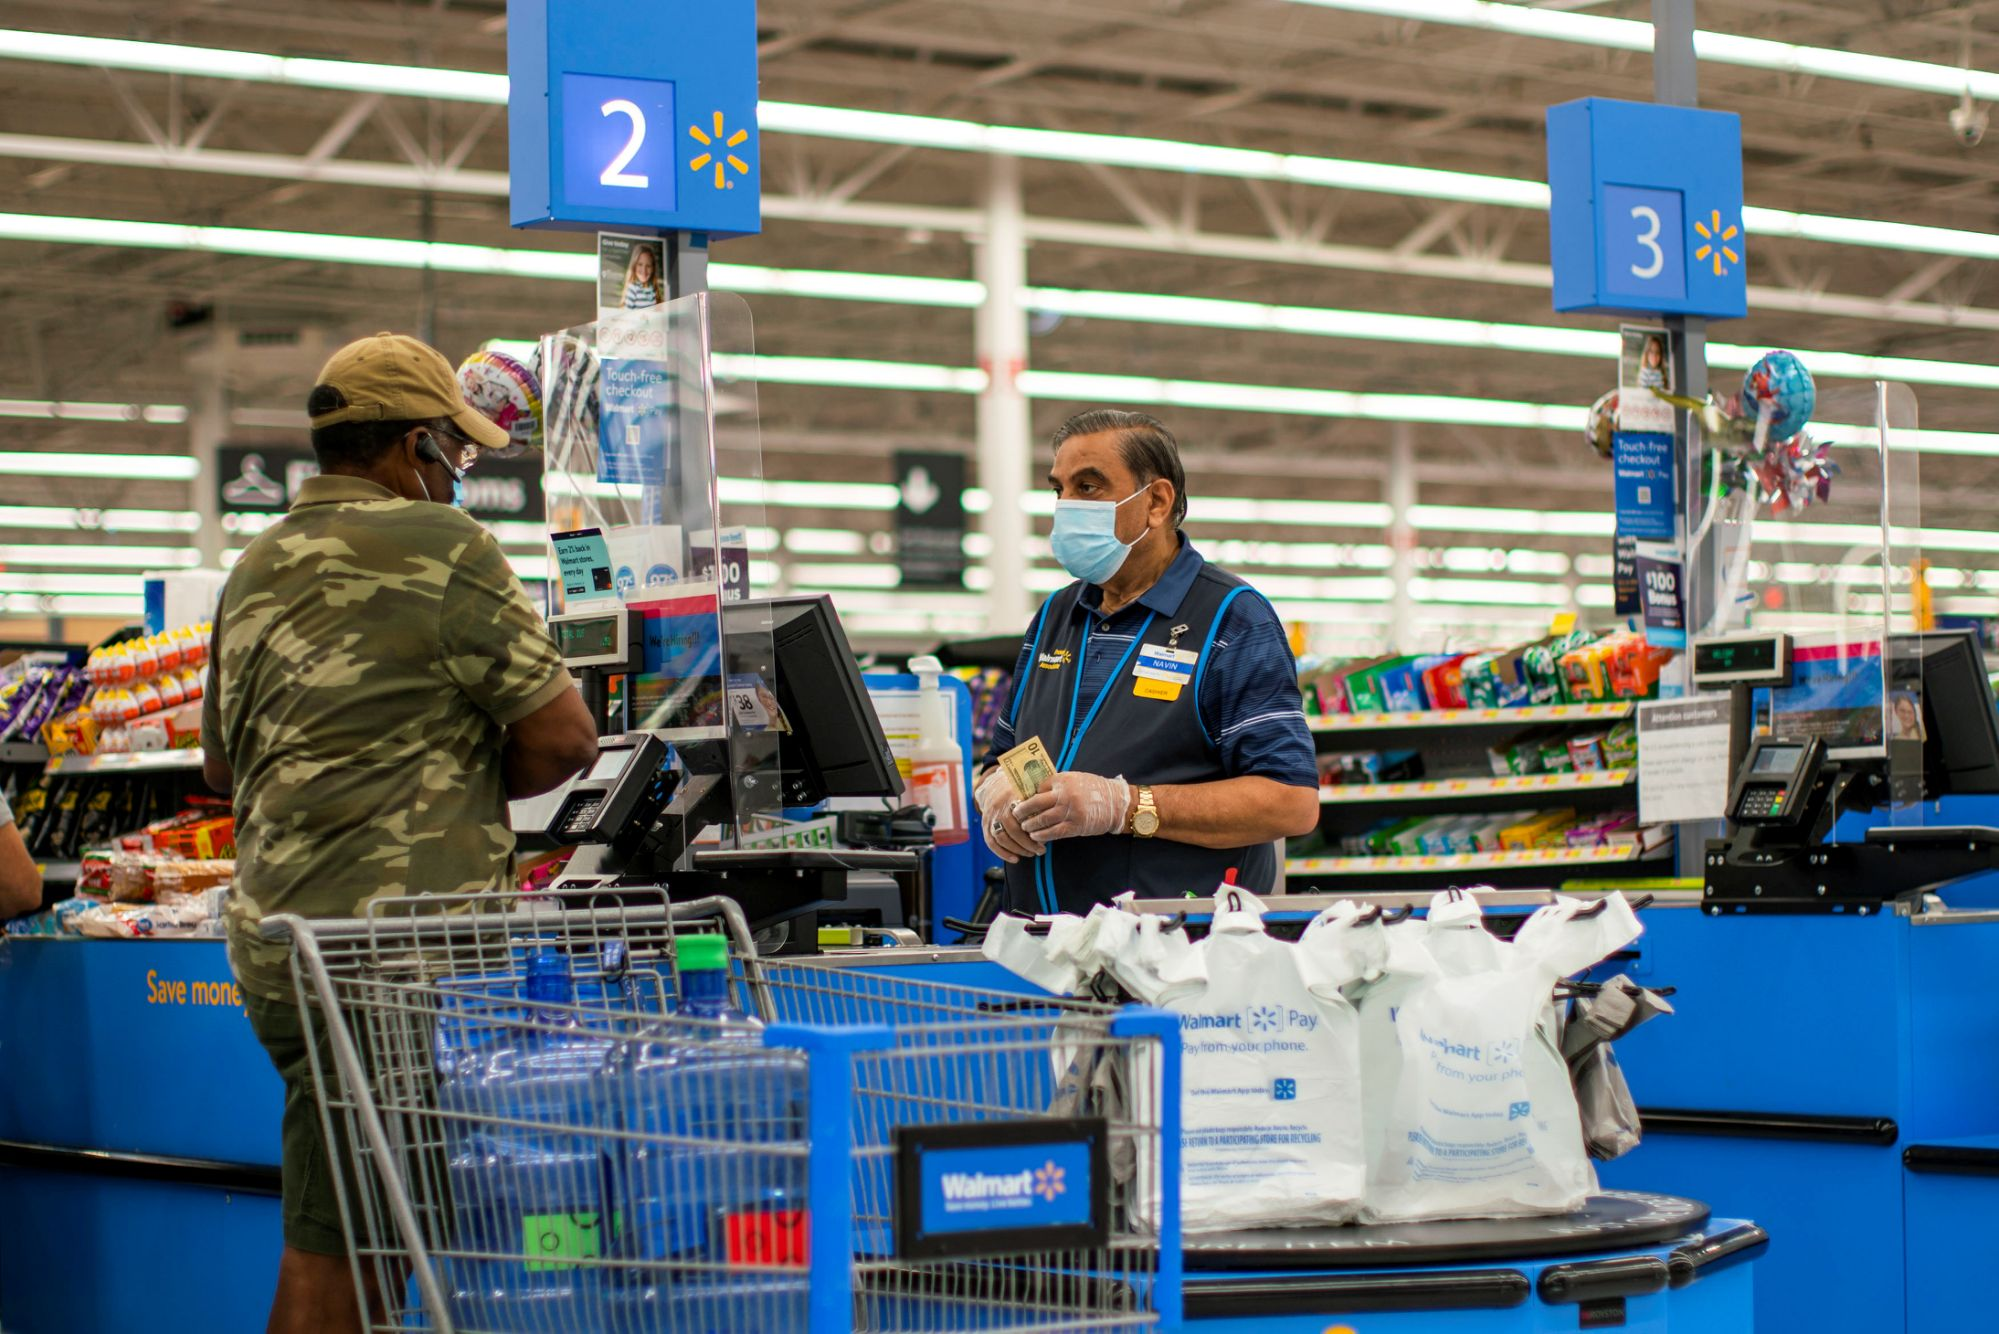 walmart-earnings,-retail-sales,-and-housing-data:-what-to-know-in-the-week-ahead